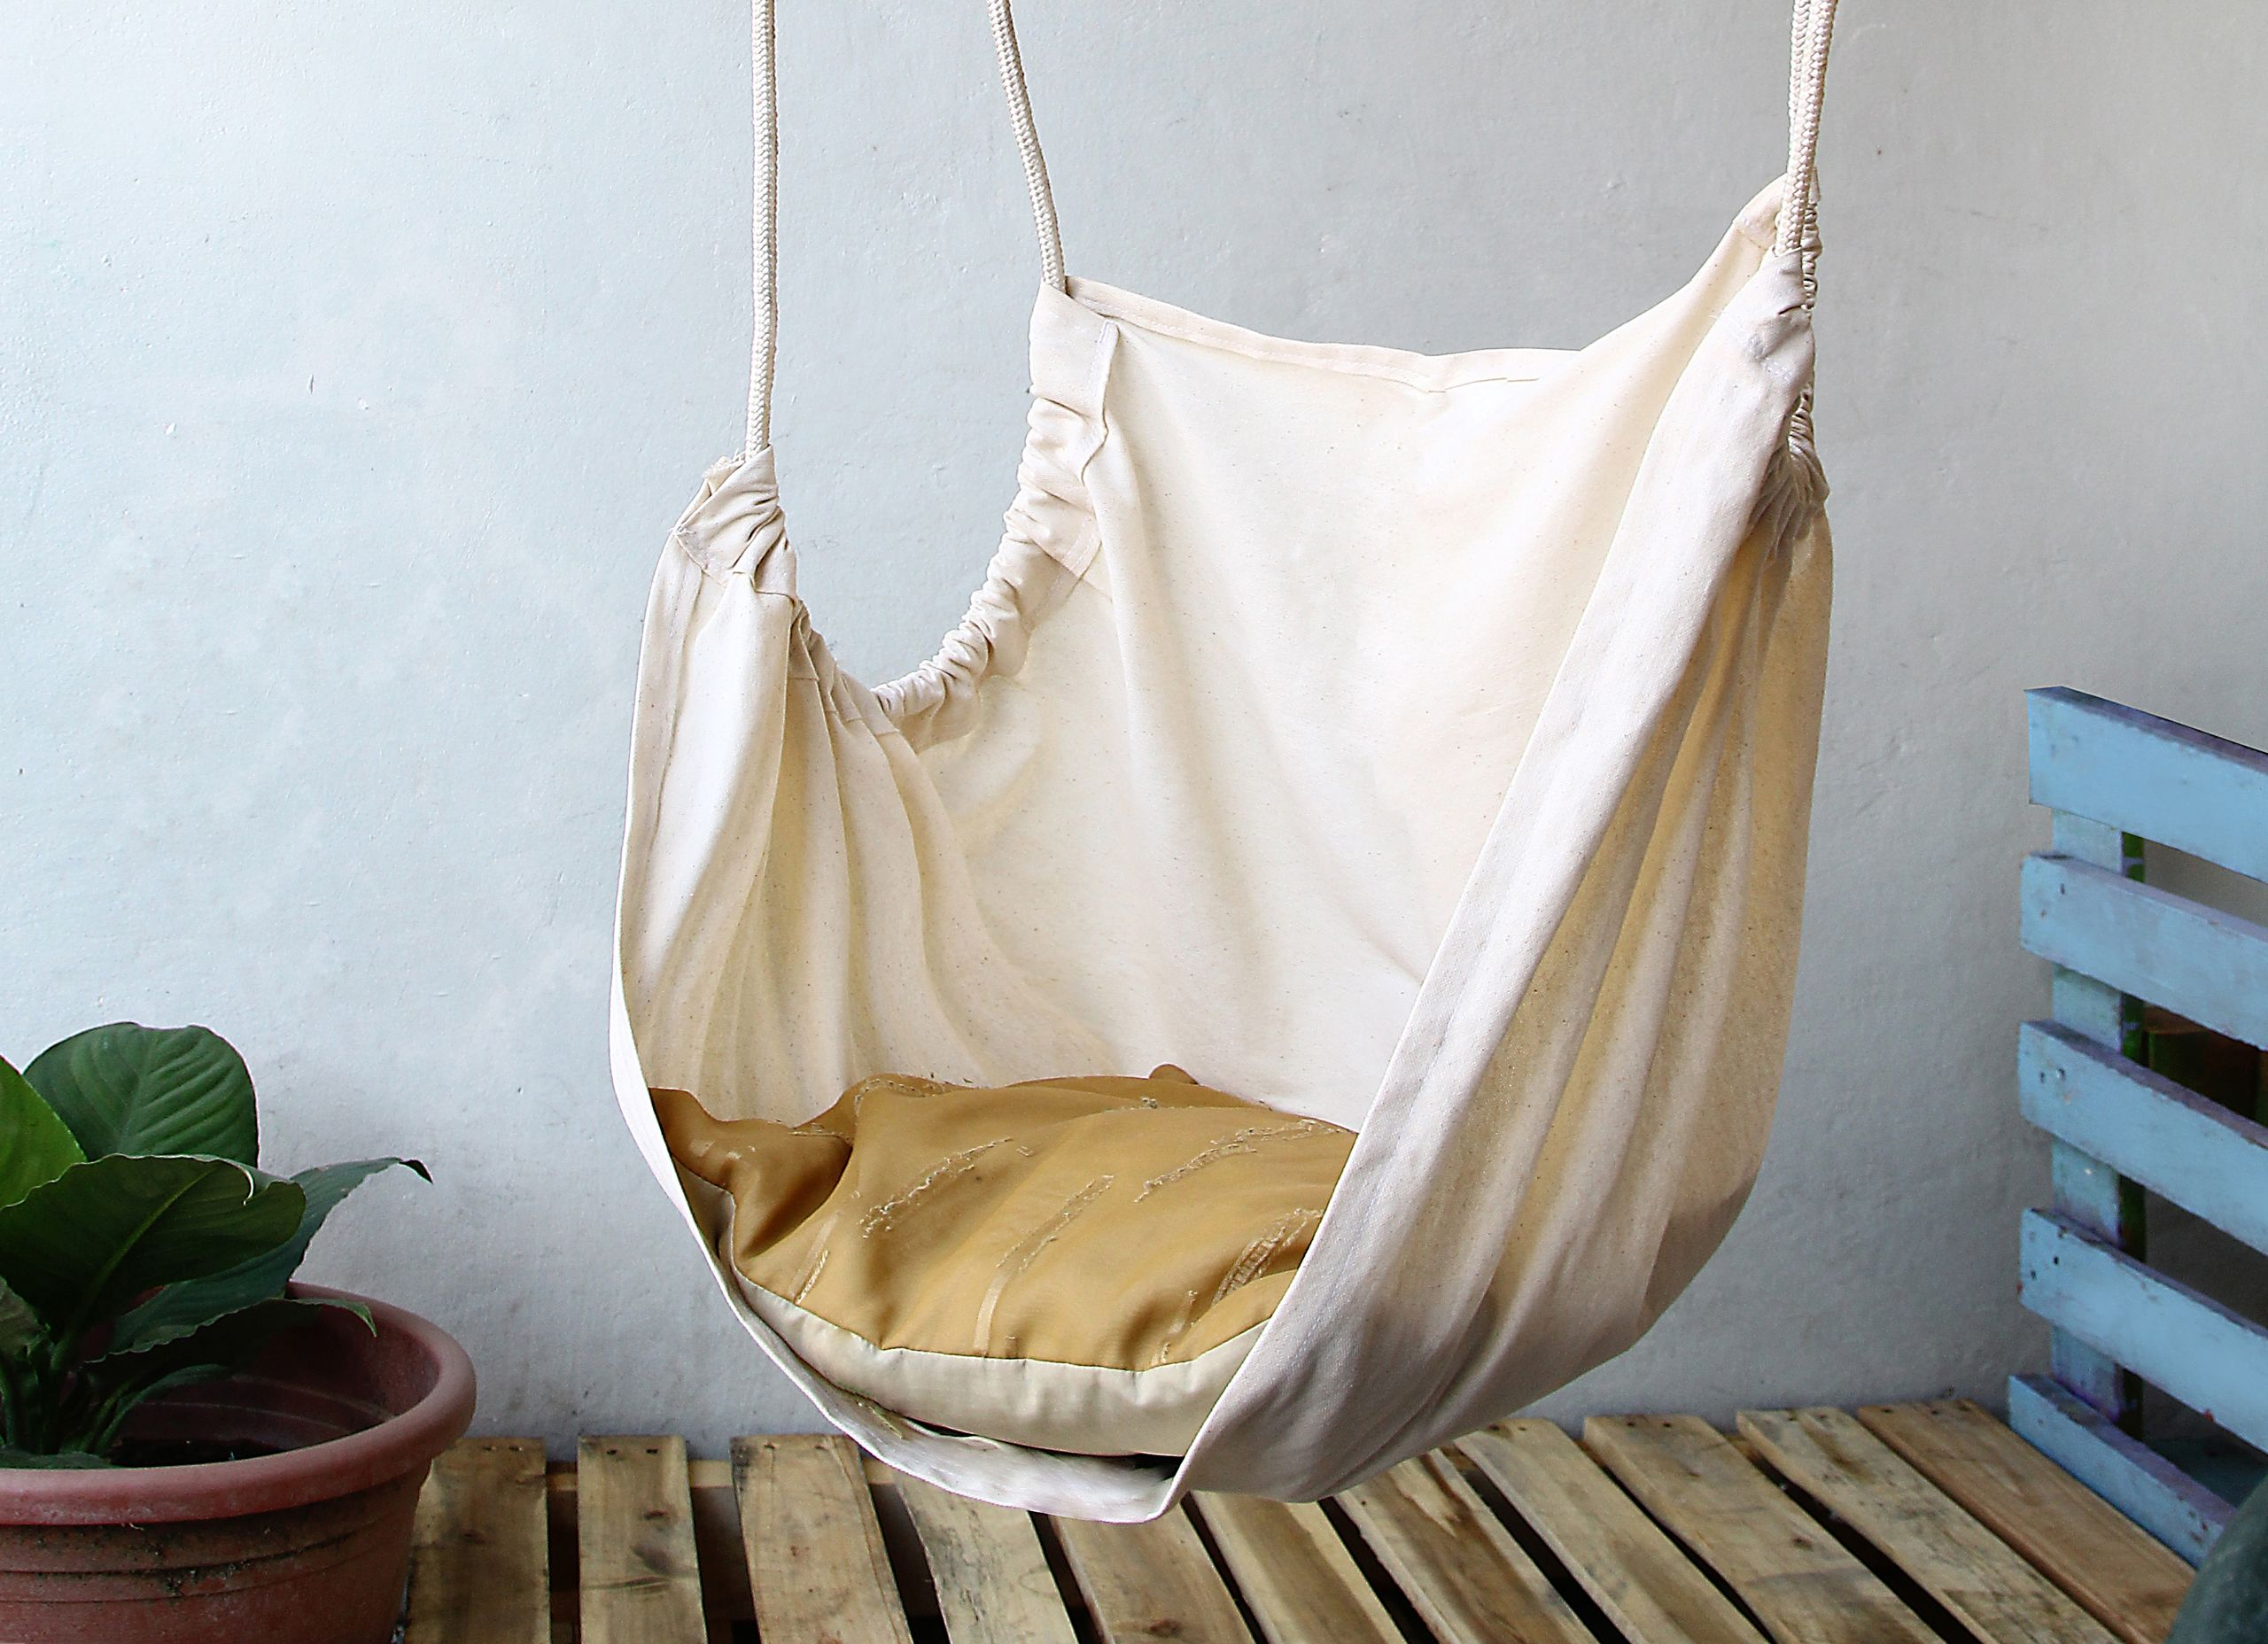 Make A Hammock Chair